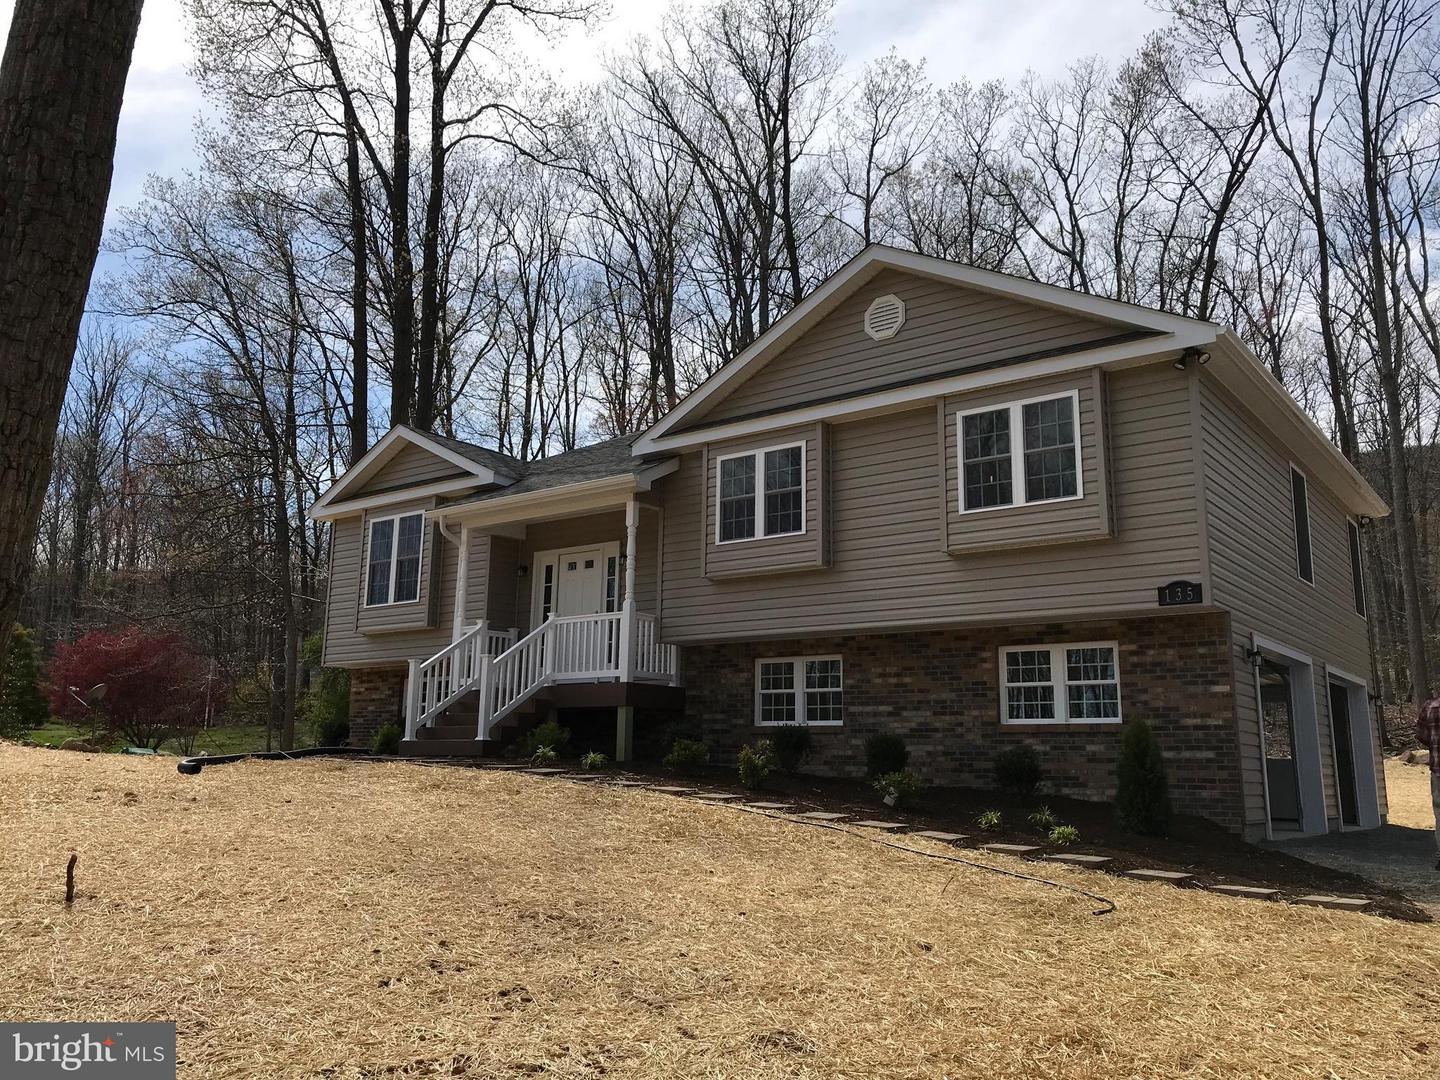 Homes For Sale In The Shawneeland Subdivision Winchester